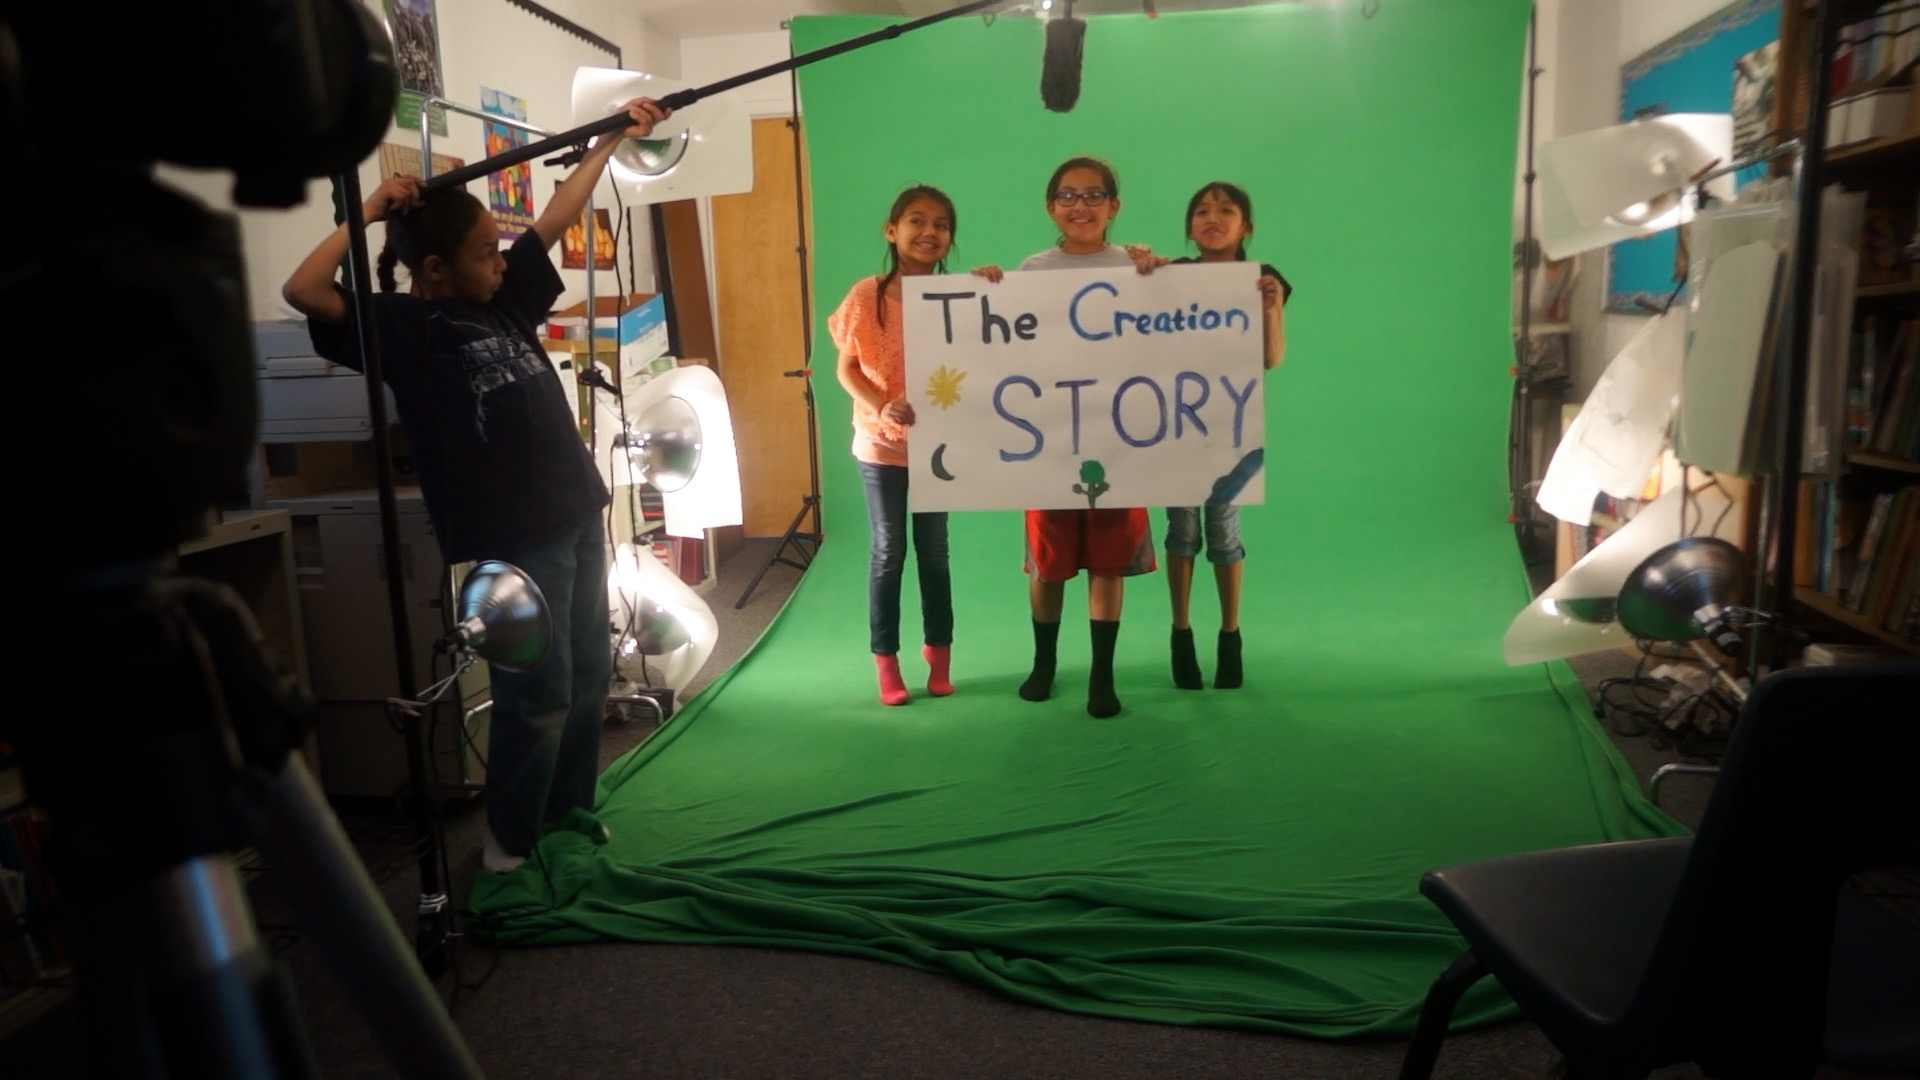 Students working on the film